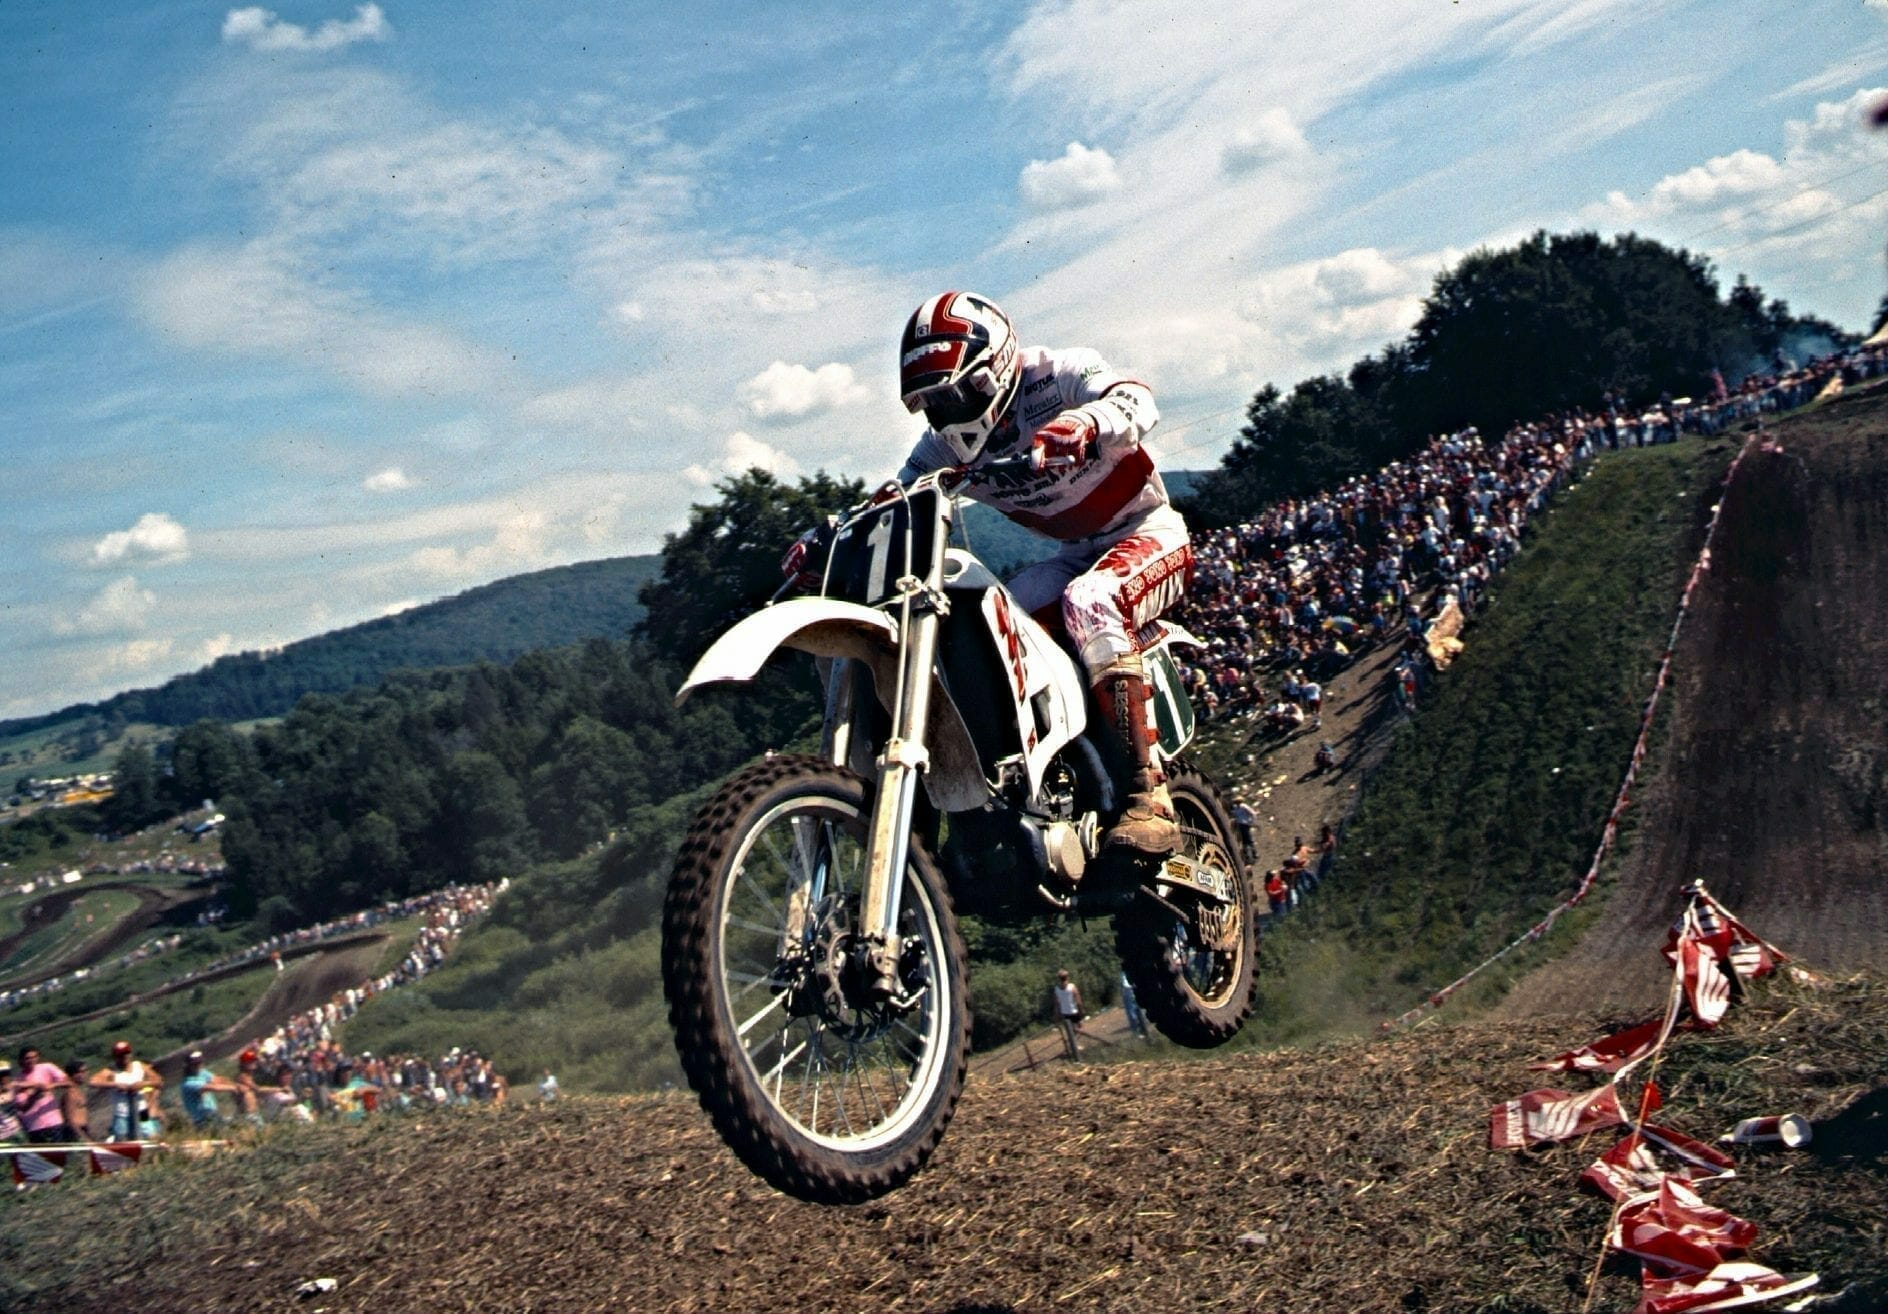 John Van Den Berk at the 1989 Unadilla 250 USGP